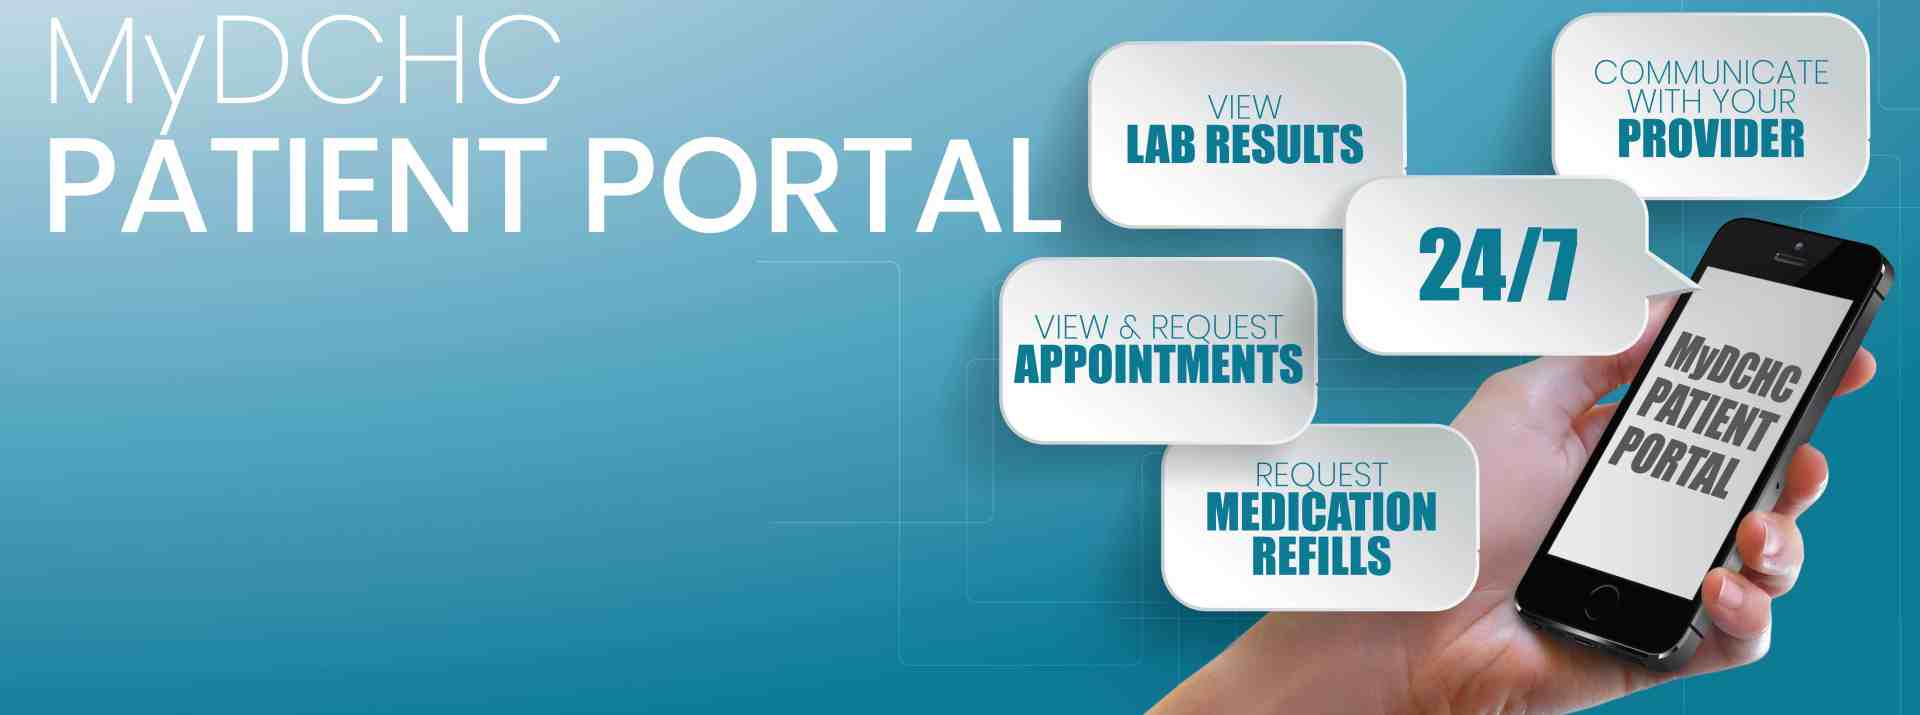 to your medical information 24/7! Self-enroll today.